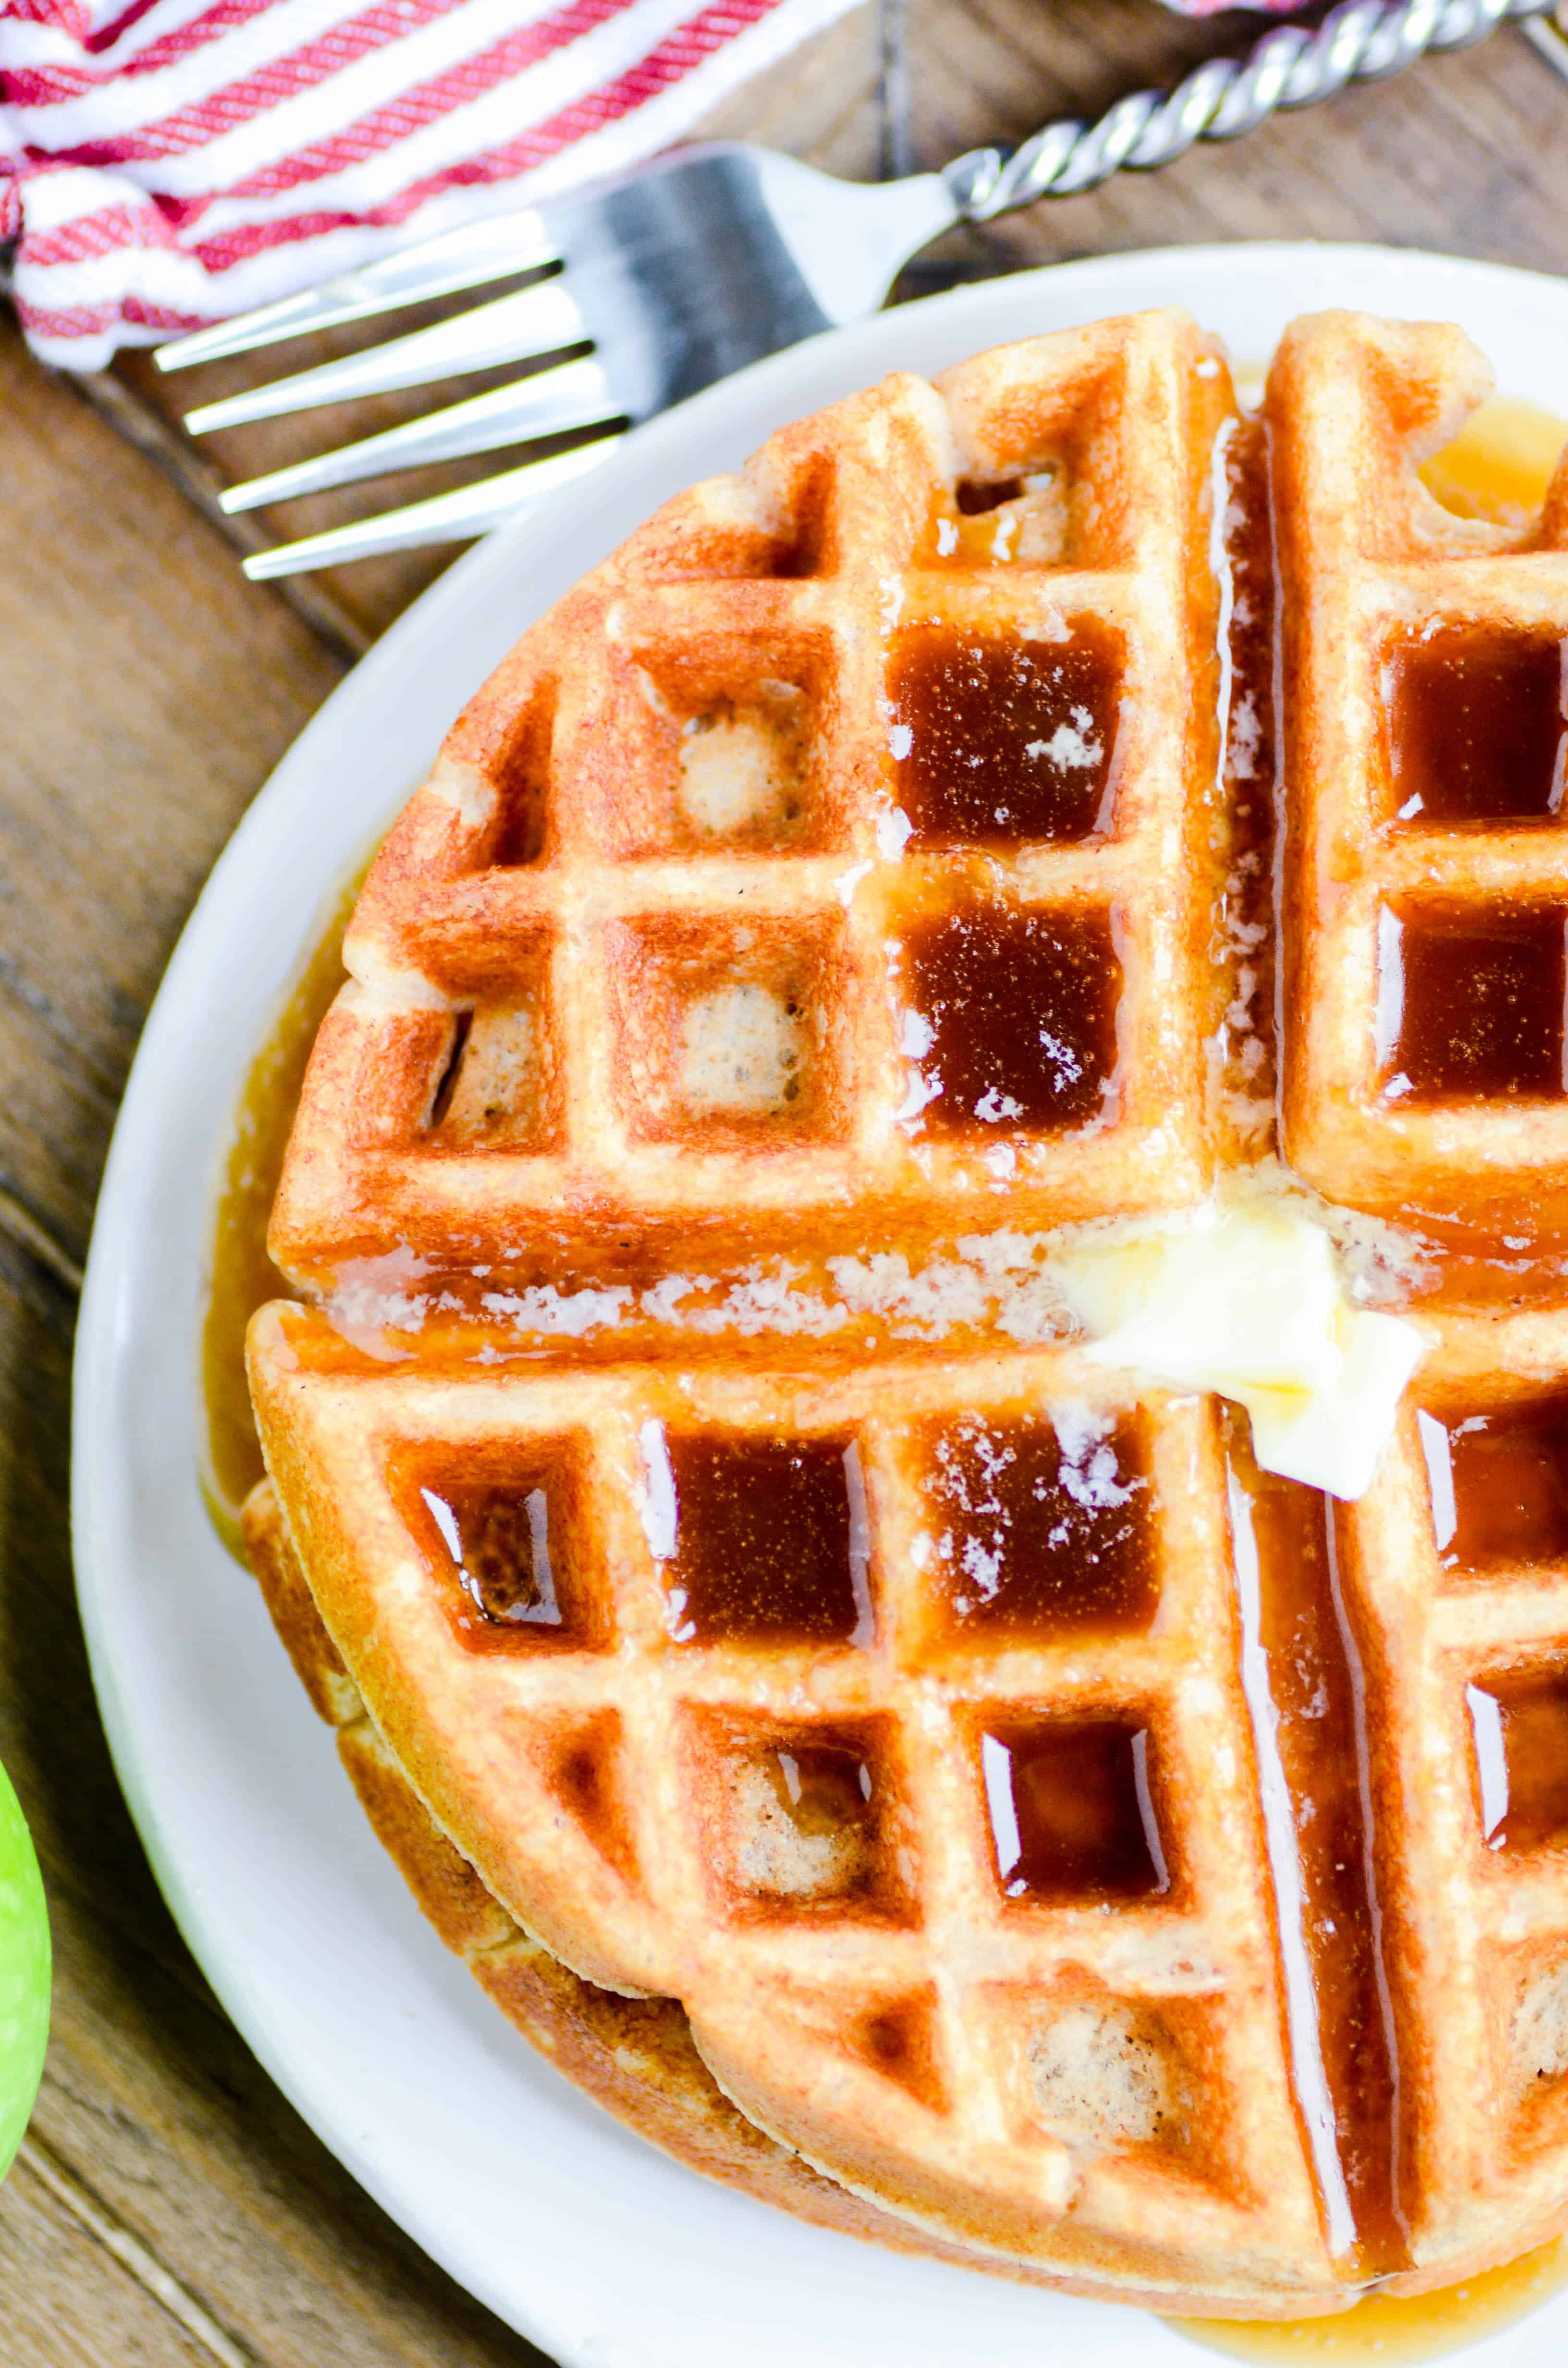 Here is a recipe for the perfect Fall weekend breakfast or brunch: Apple Cider Waffles with an amazing homemade Caramel Apple Cider Syrup.